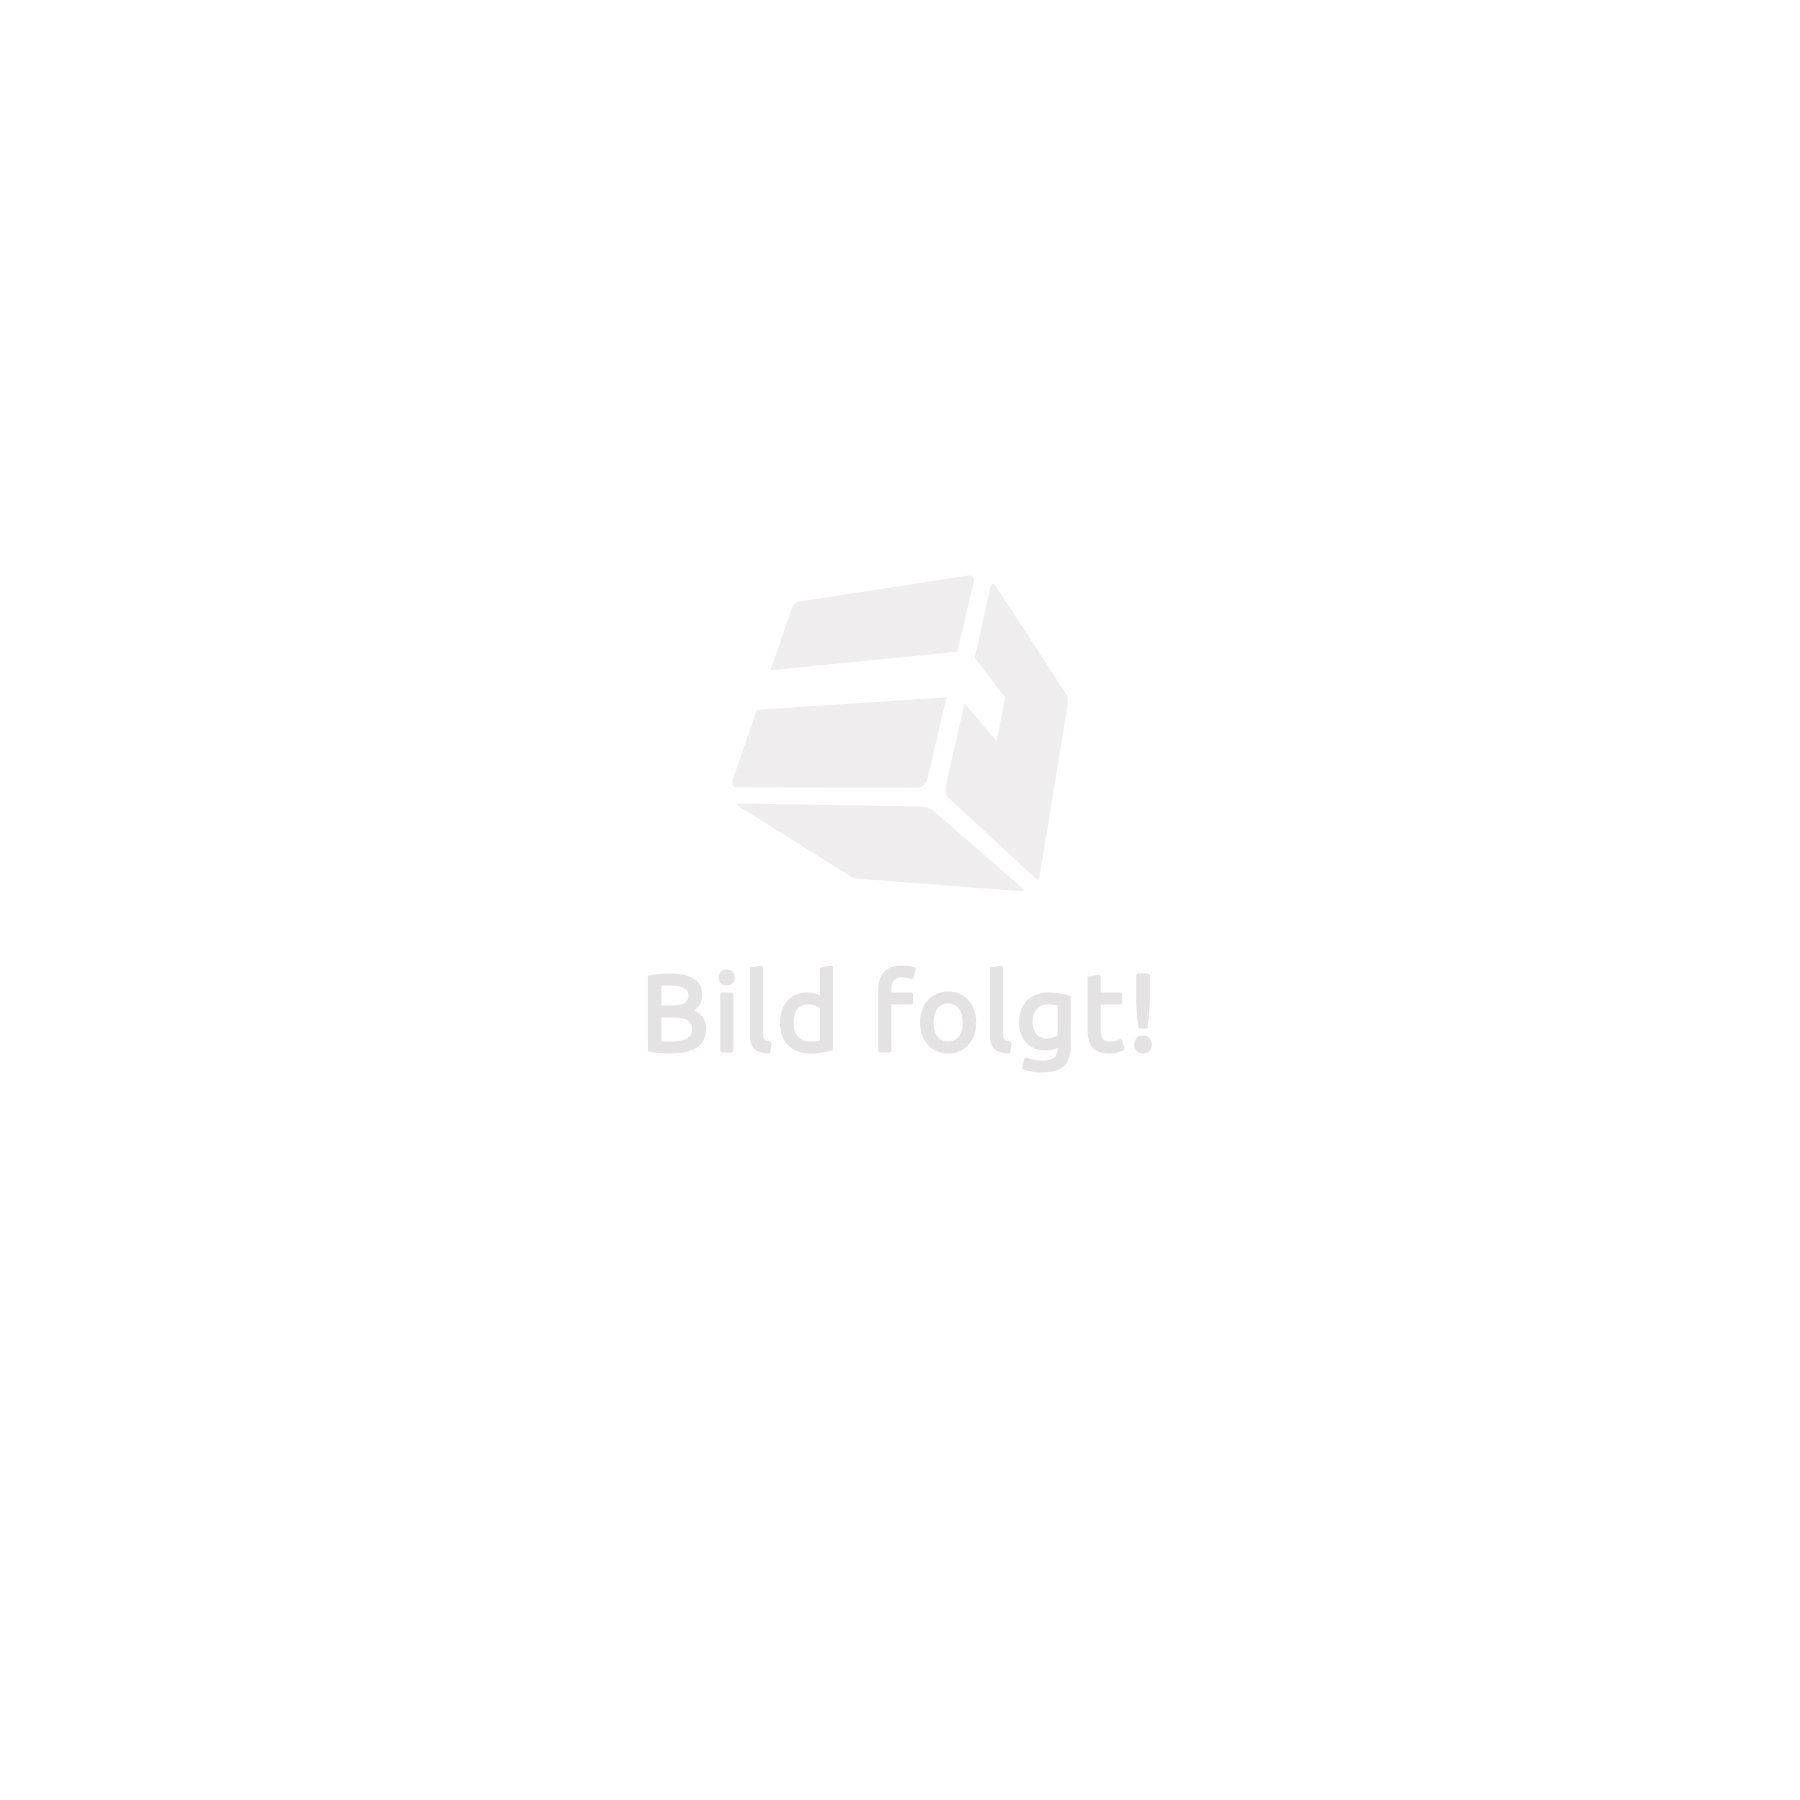 Inflatable pool with filter Ø 300 x 76 cm